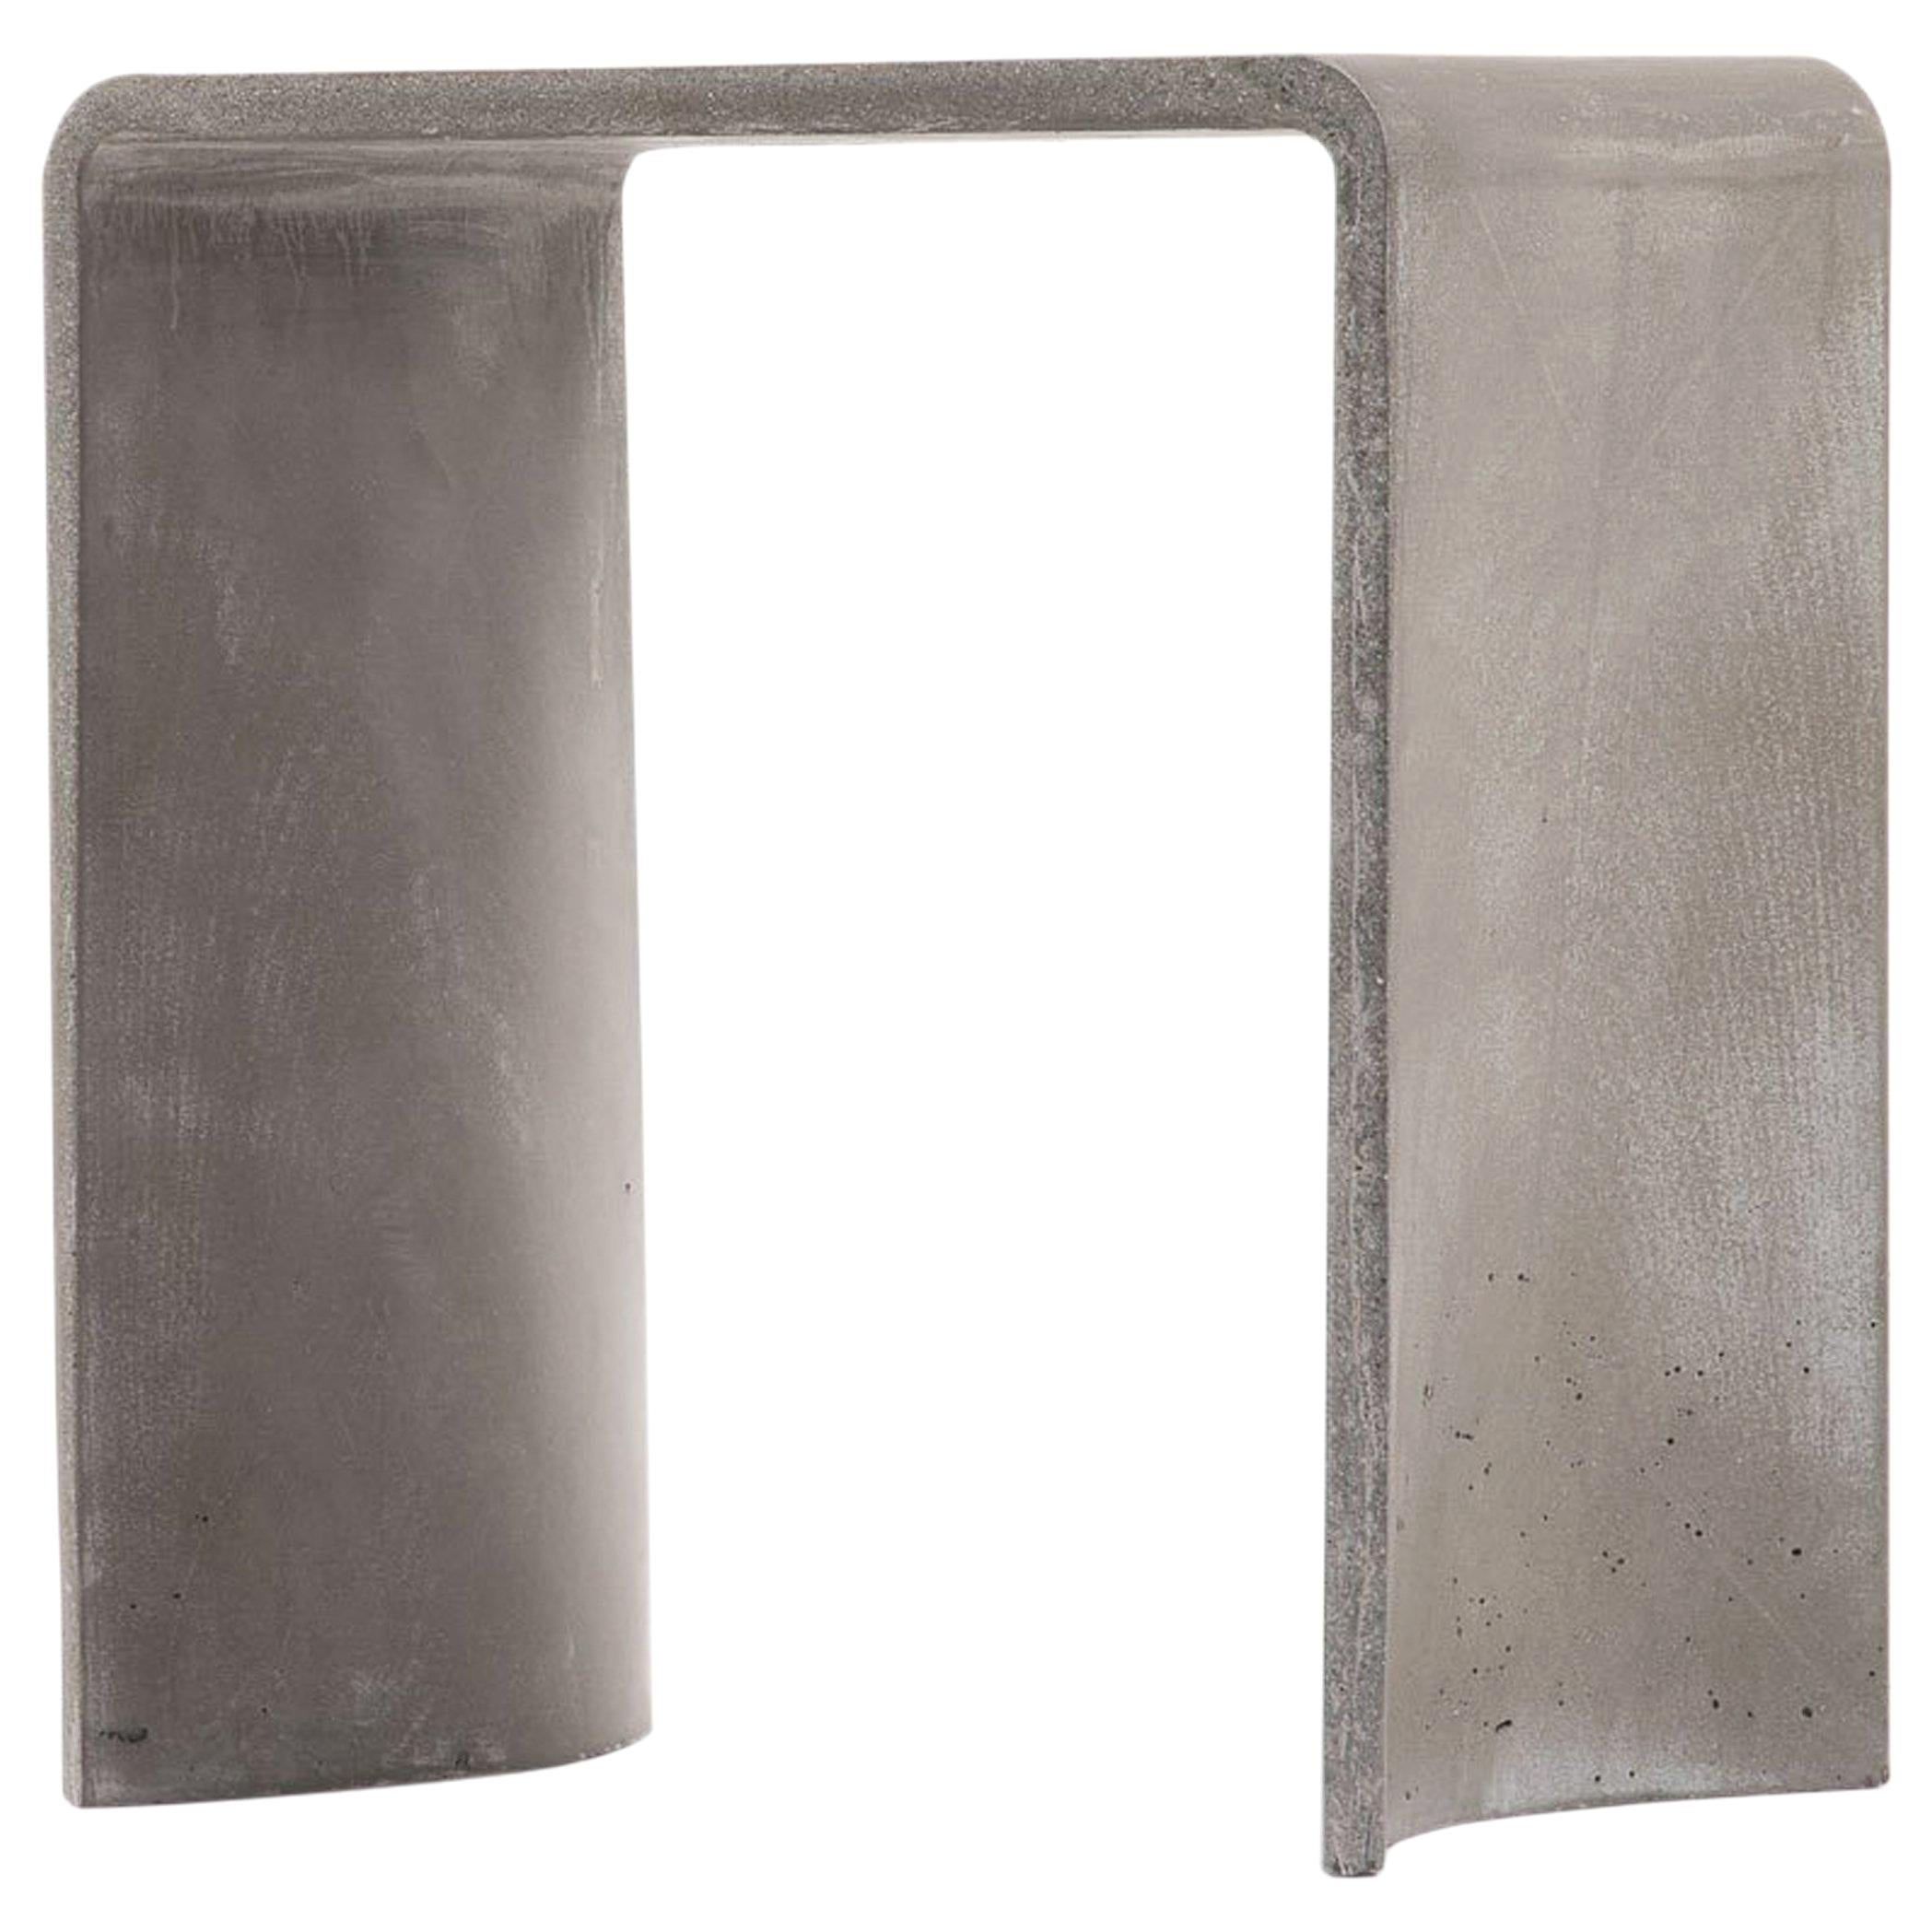 21st Century Concrete Contemporary Stool & Side Table, Light Grey Cement Color